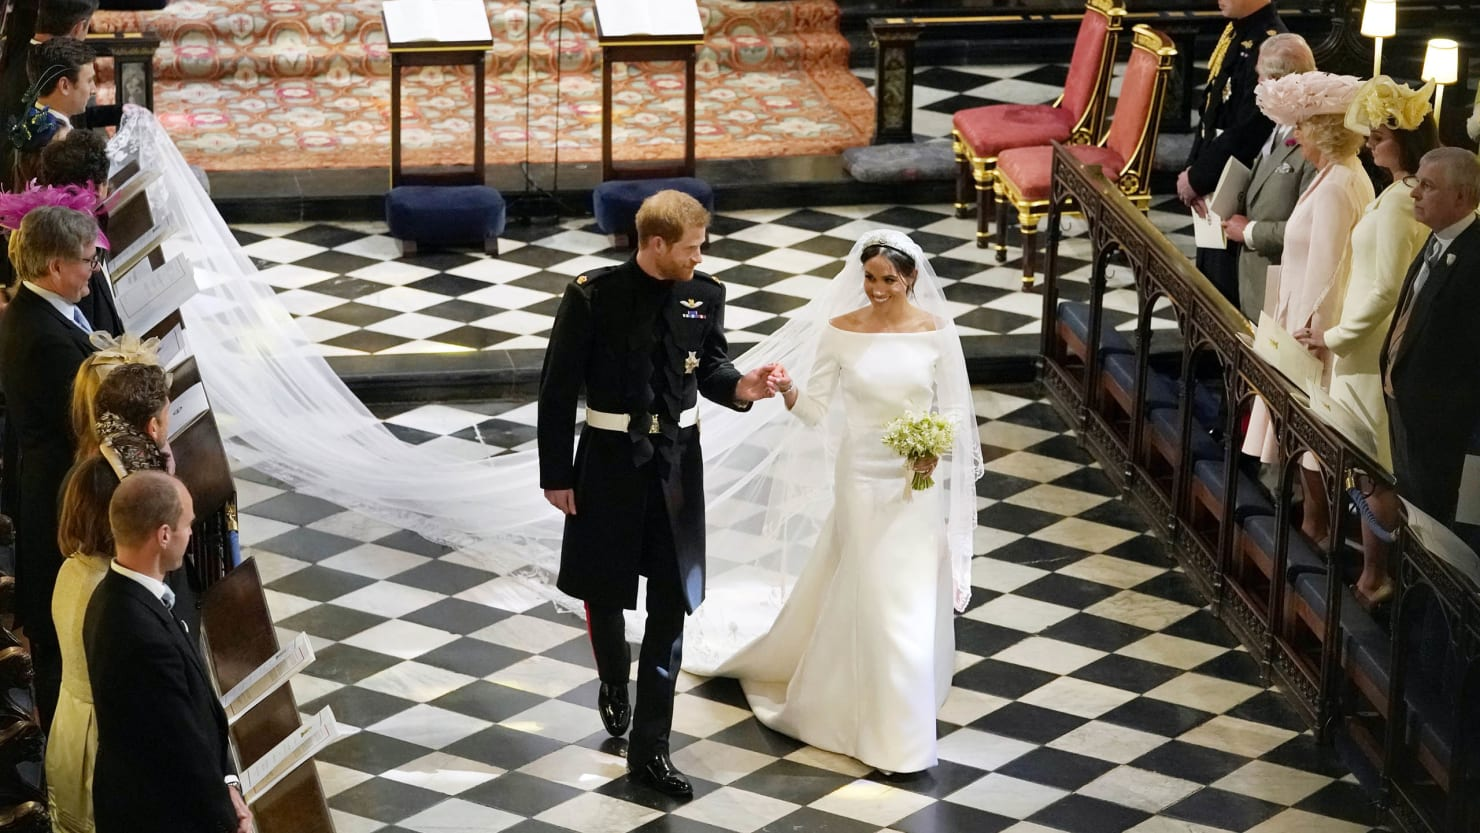 Meghan Markle Said Yes To The Most Beautiful Wedding Dress